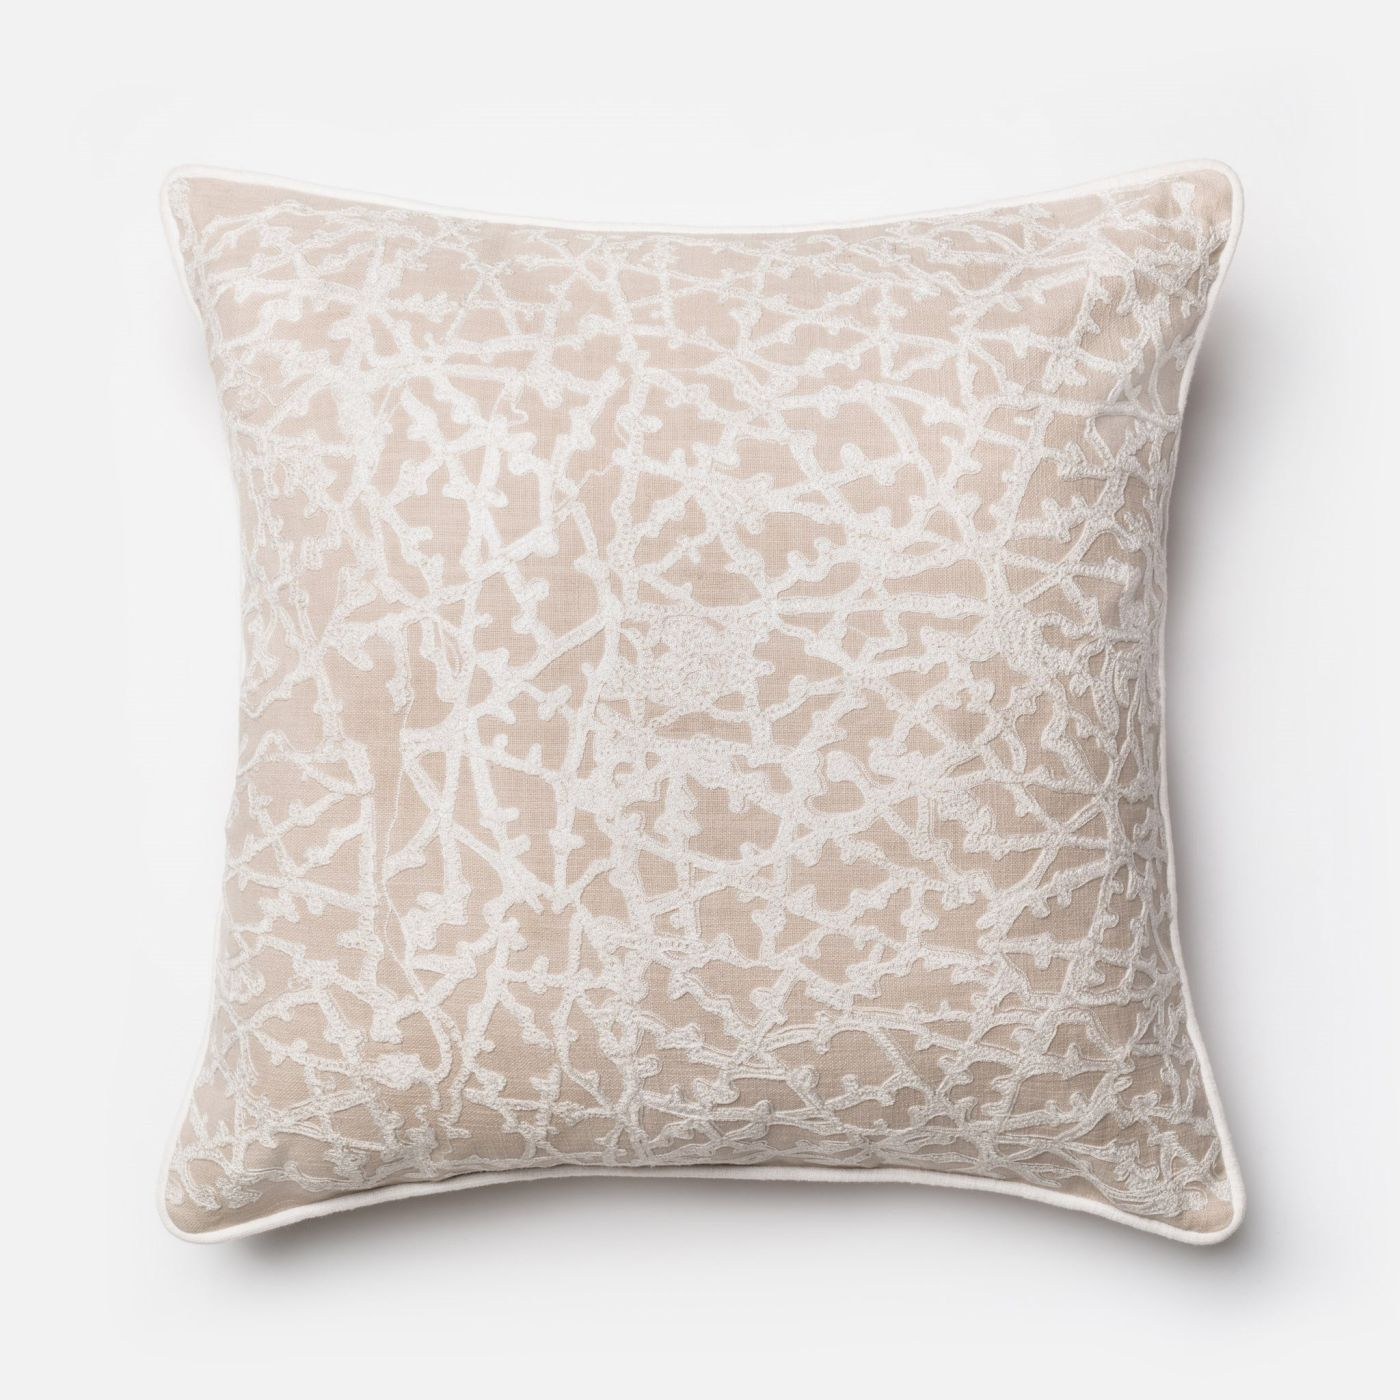 Throw Pillow Warehouse : Loloi Rugs Loloi Beige / White Decorative Throw Pillow (P0149) DSETP0149BEWHPIL3. Only $89.00 at ...